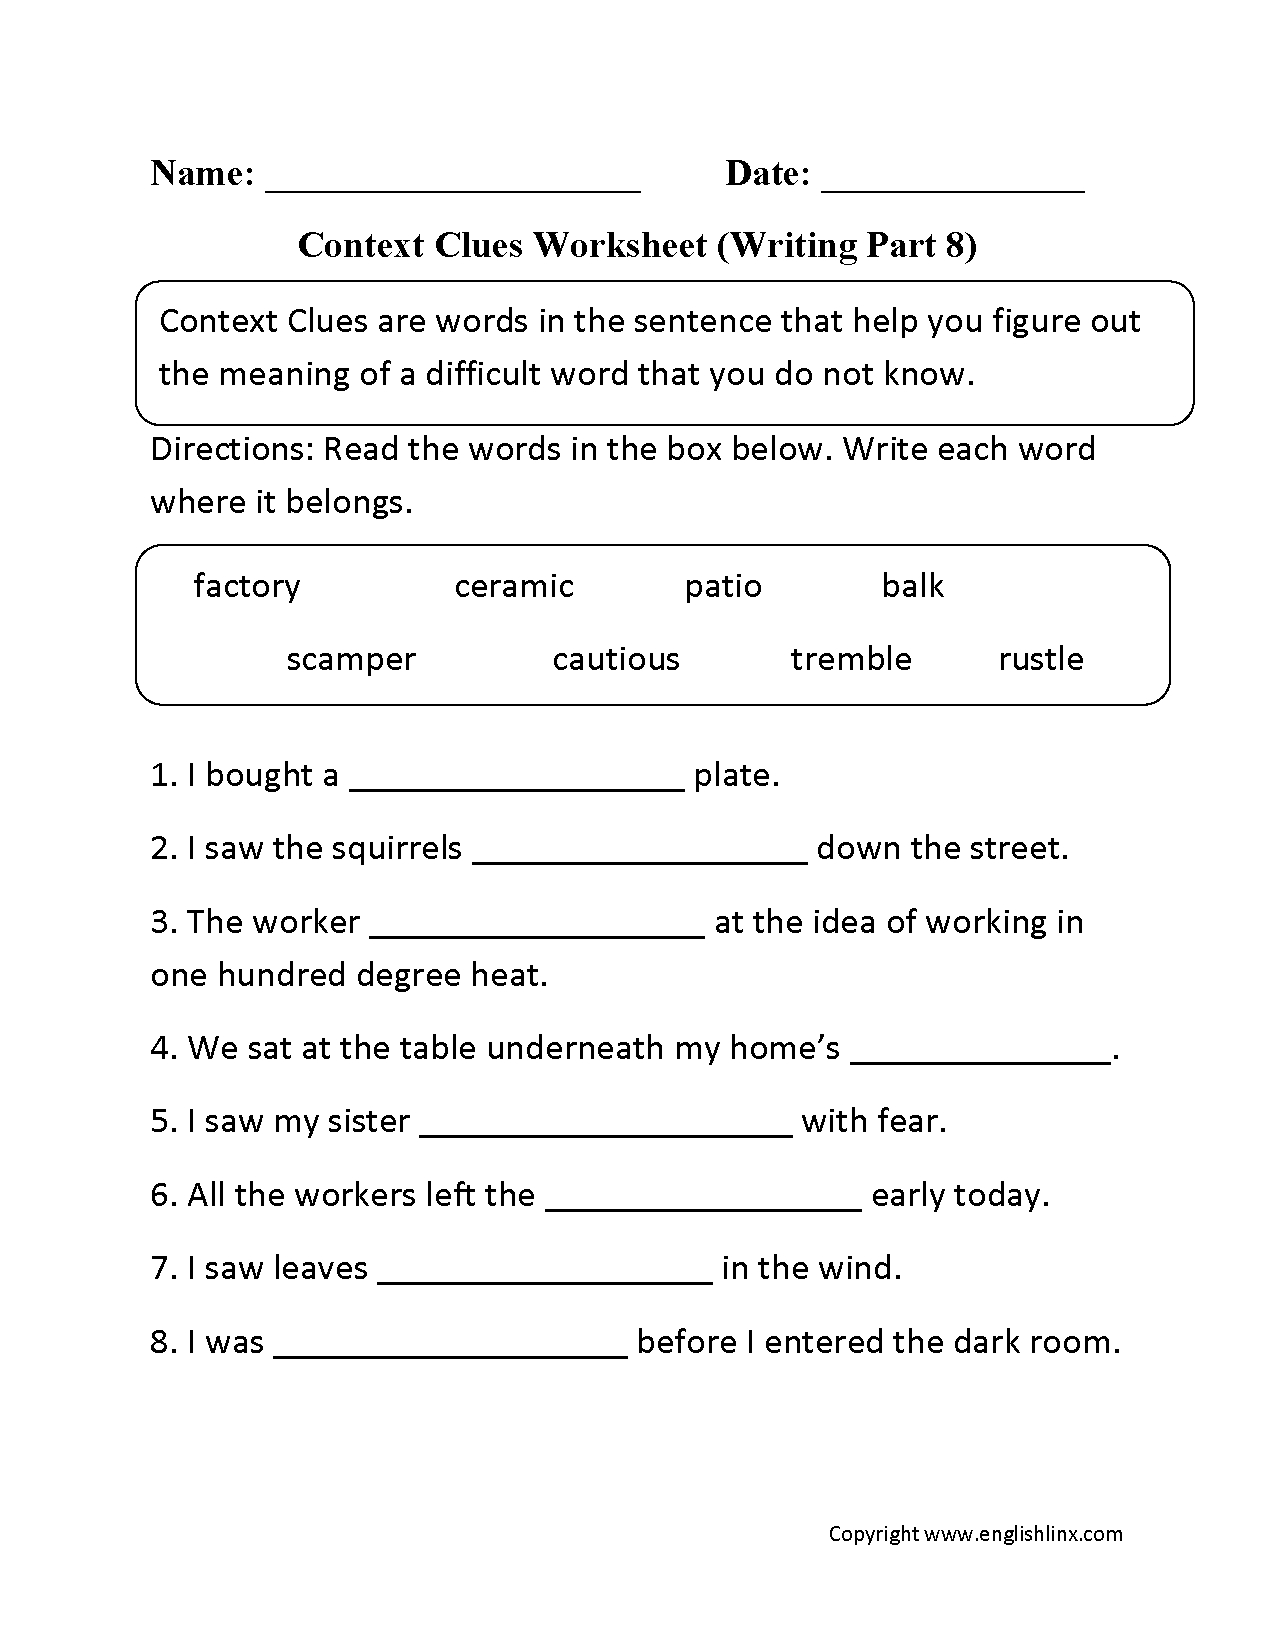 Context Clues Worksheet Writing Part 8 Intermediate | Reading Games | Context Clues Printable Worksheets 6Th Grade